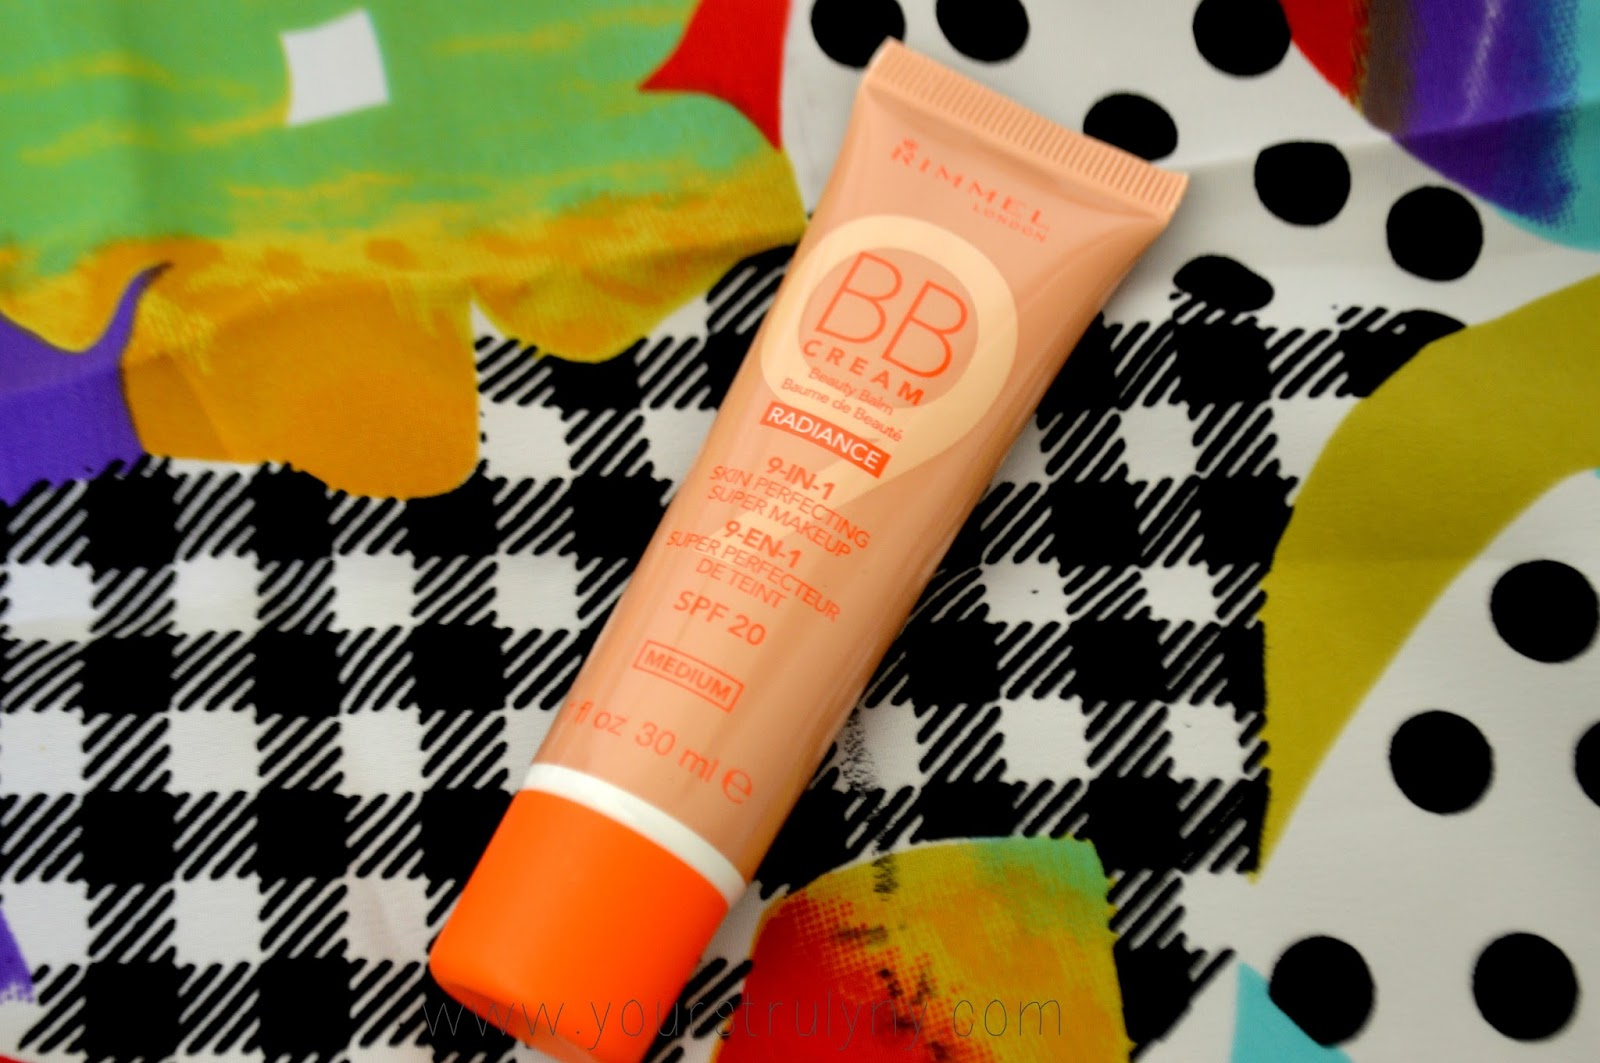 Rimmel BB Cream Radiance in Medium